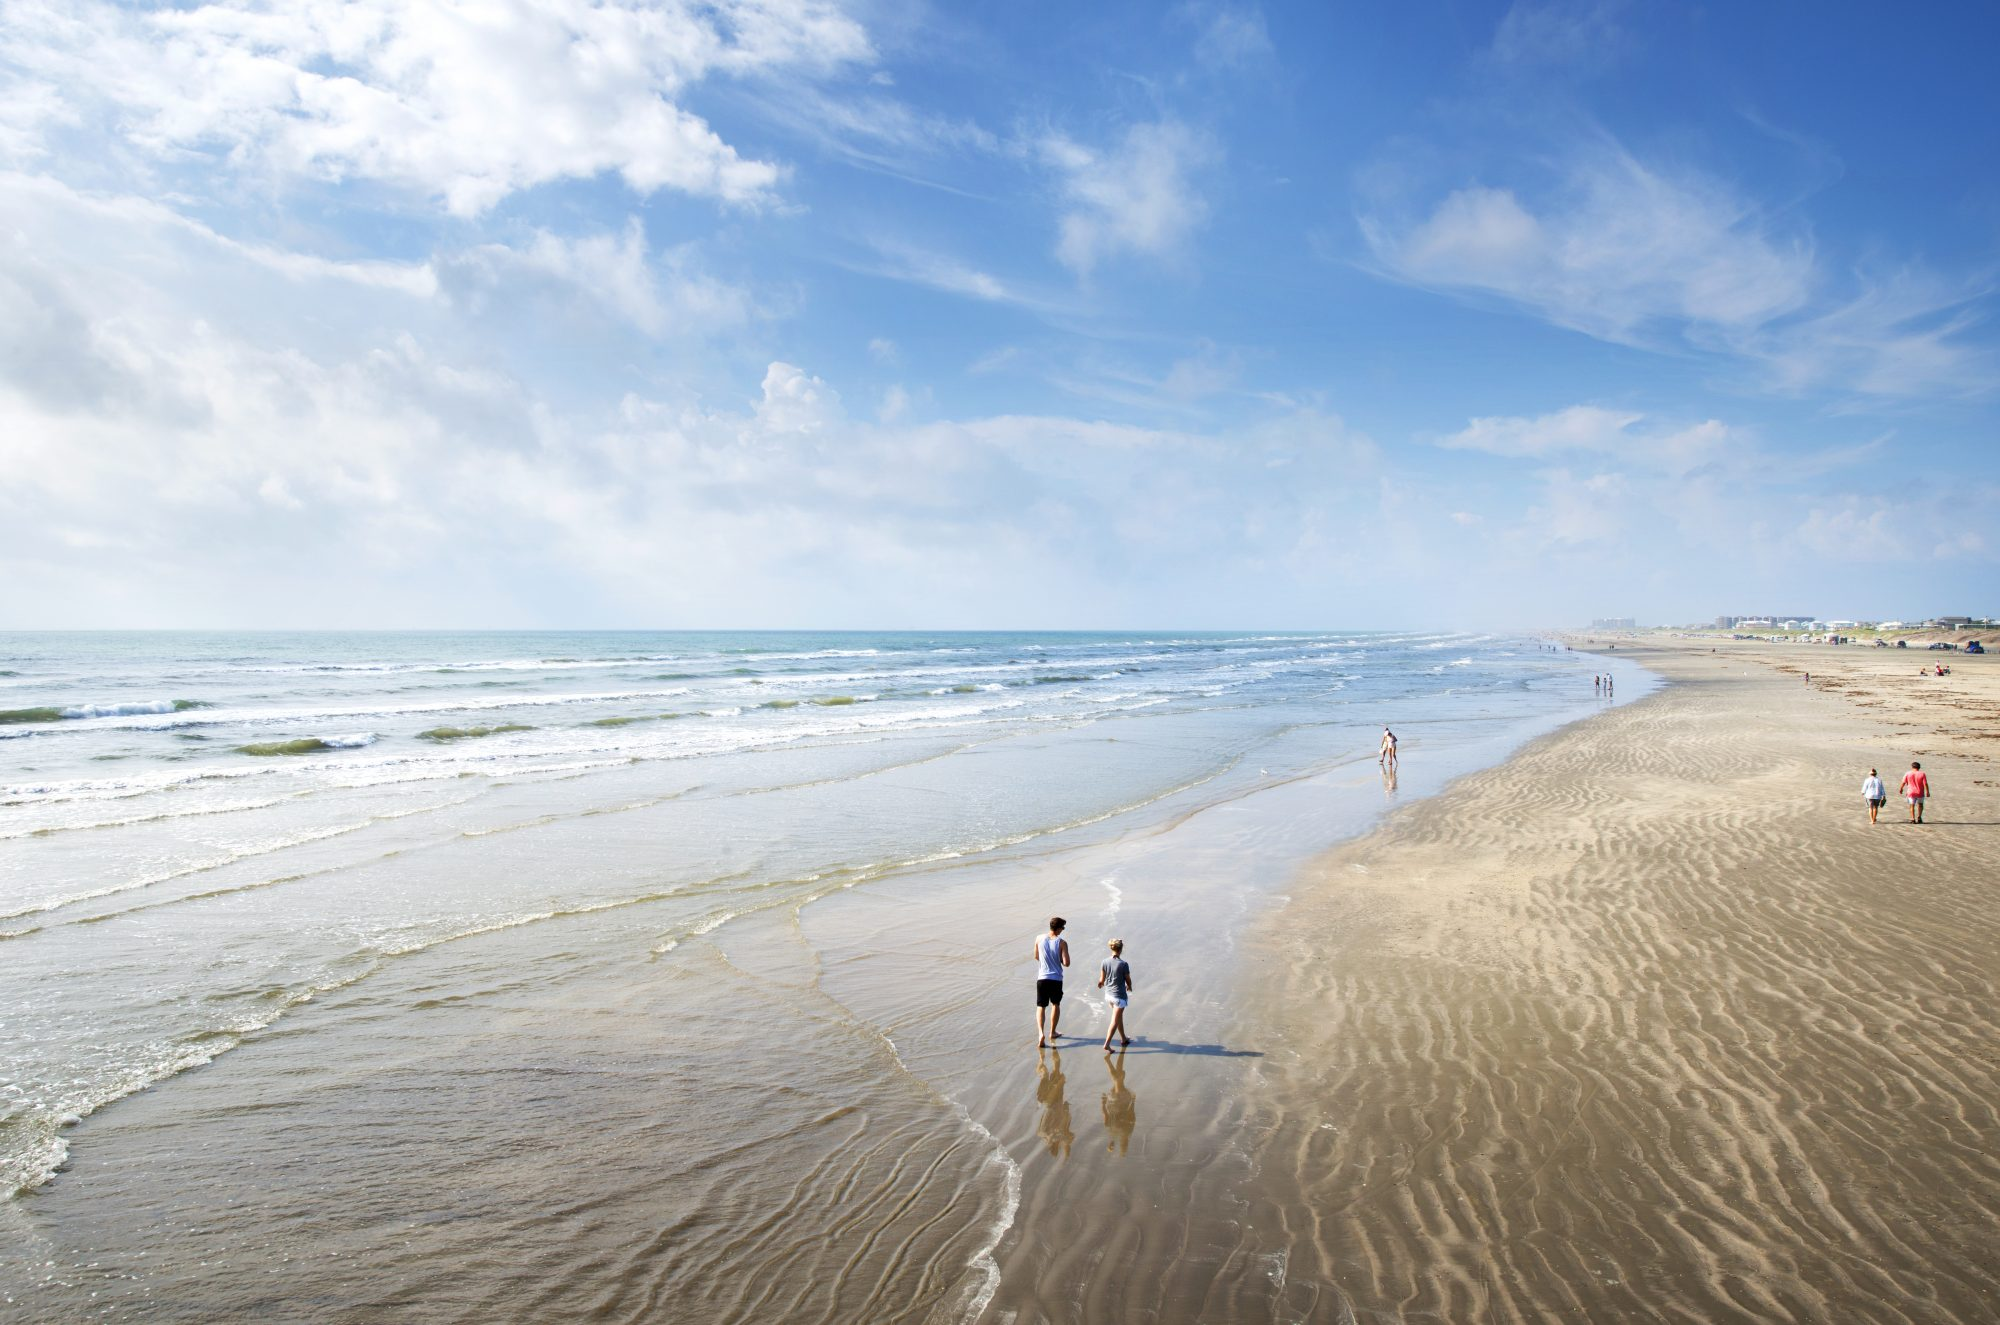 "This beloved family beach town on Mustang Island known affectionately and proudly as Port ""A"" has done a remarkable job of recovering in the wake of the devastation of Hurricane Harvey in 2017, and its 6.3 miles of broad, flat sands remain a great place t"